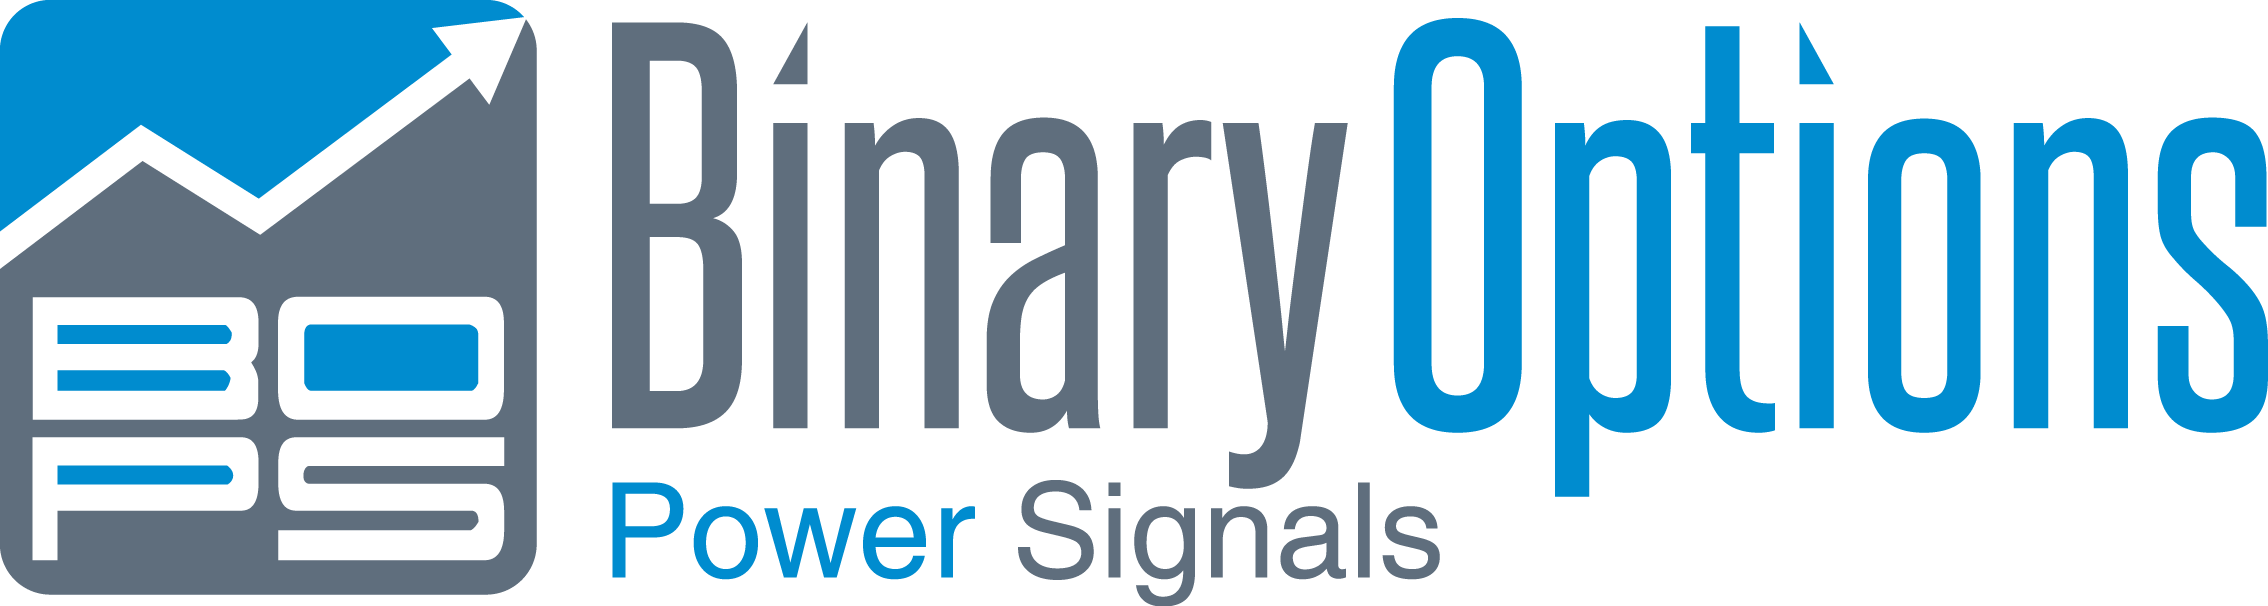 Binary option trading signal